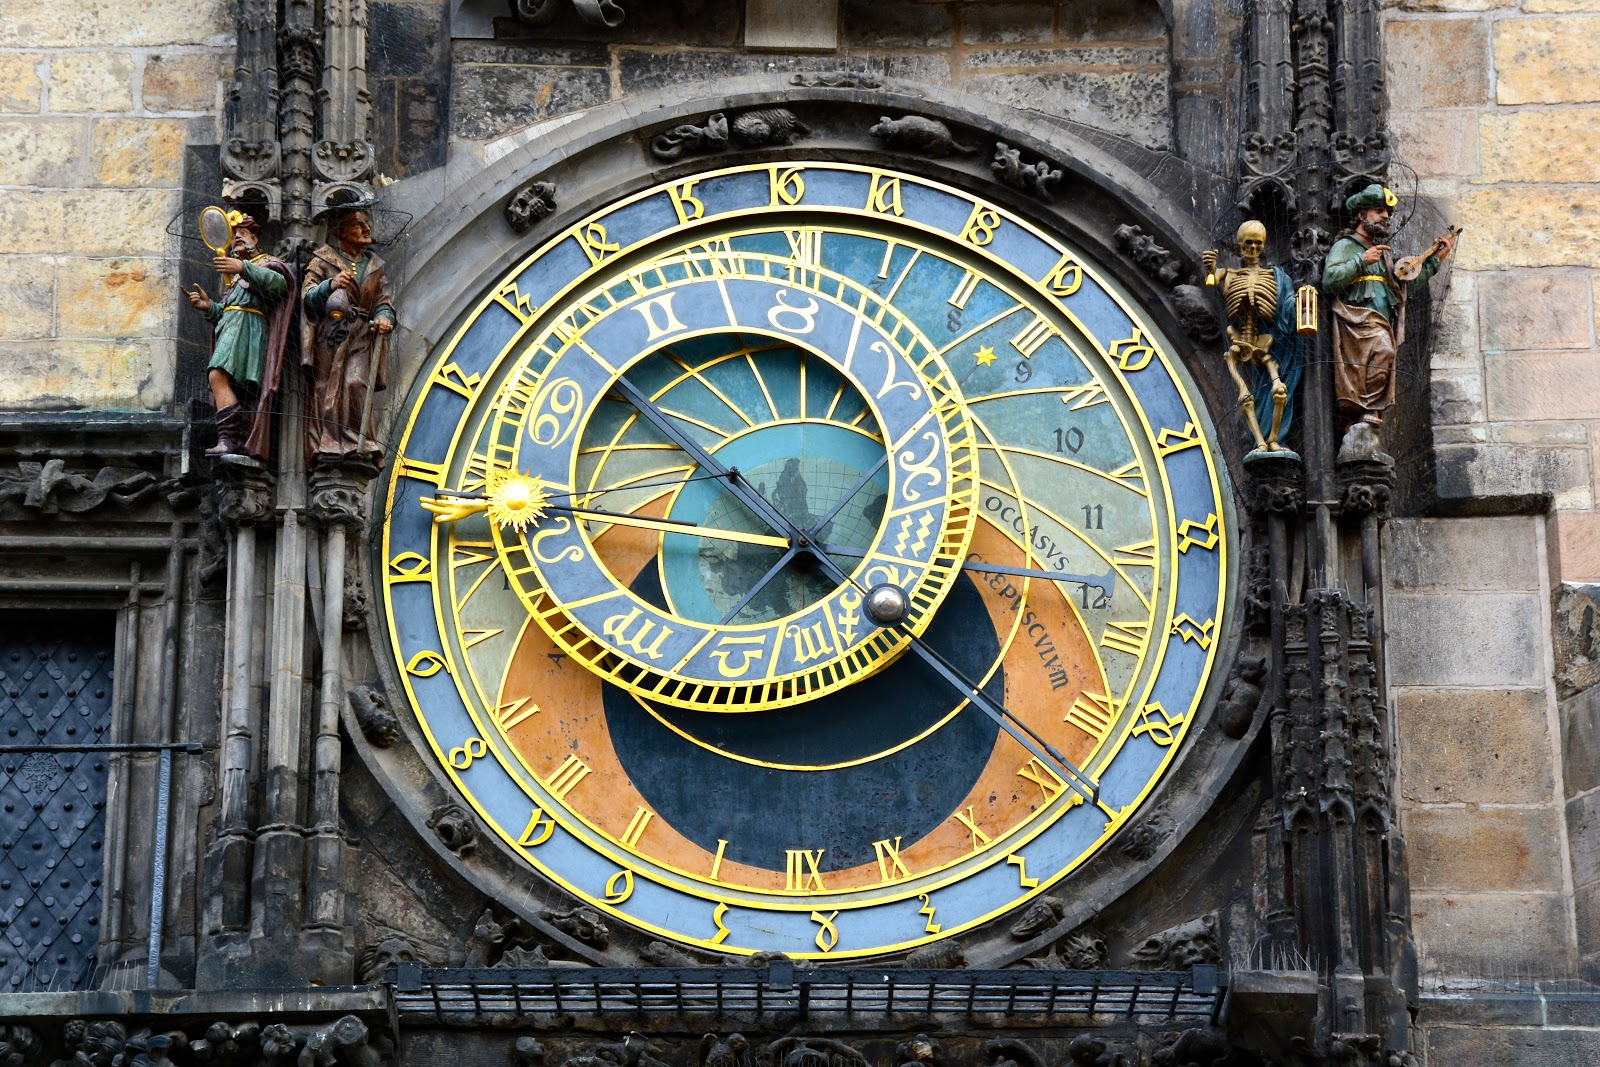 Prague's astronomical clock face